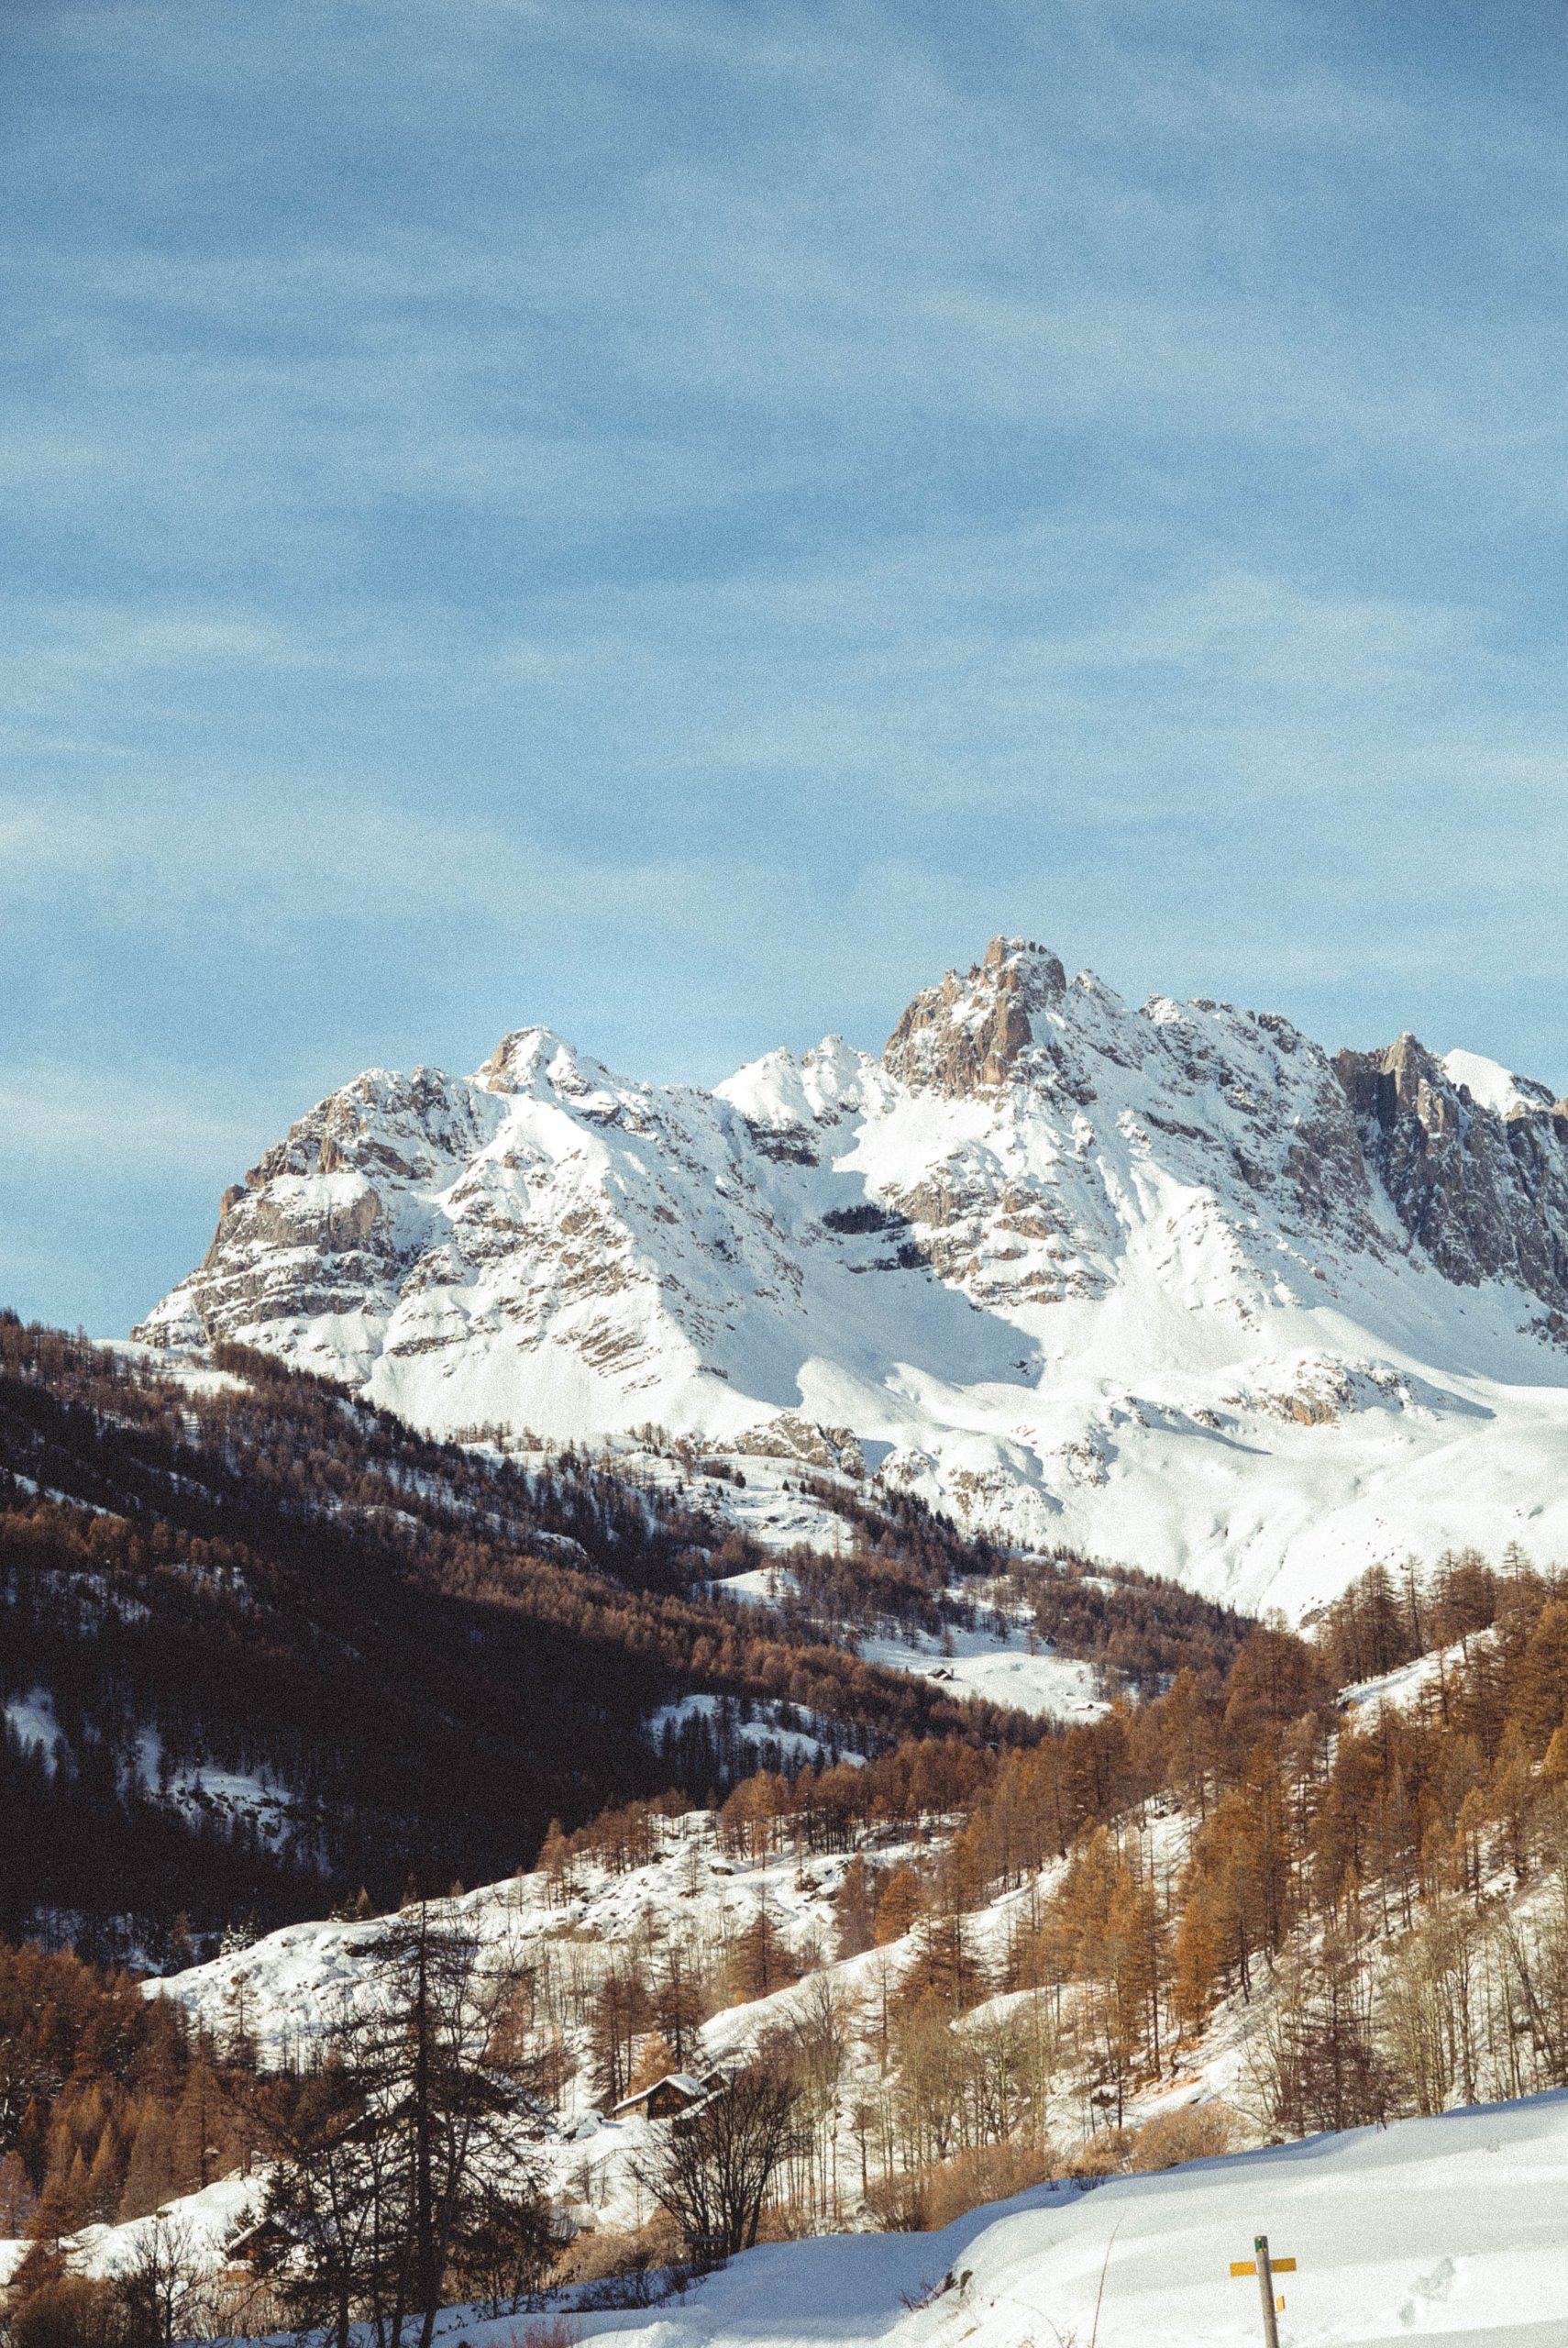 Courcheval France- Enjoy the Summer in the Ski Resort